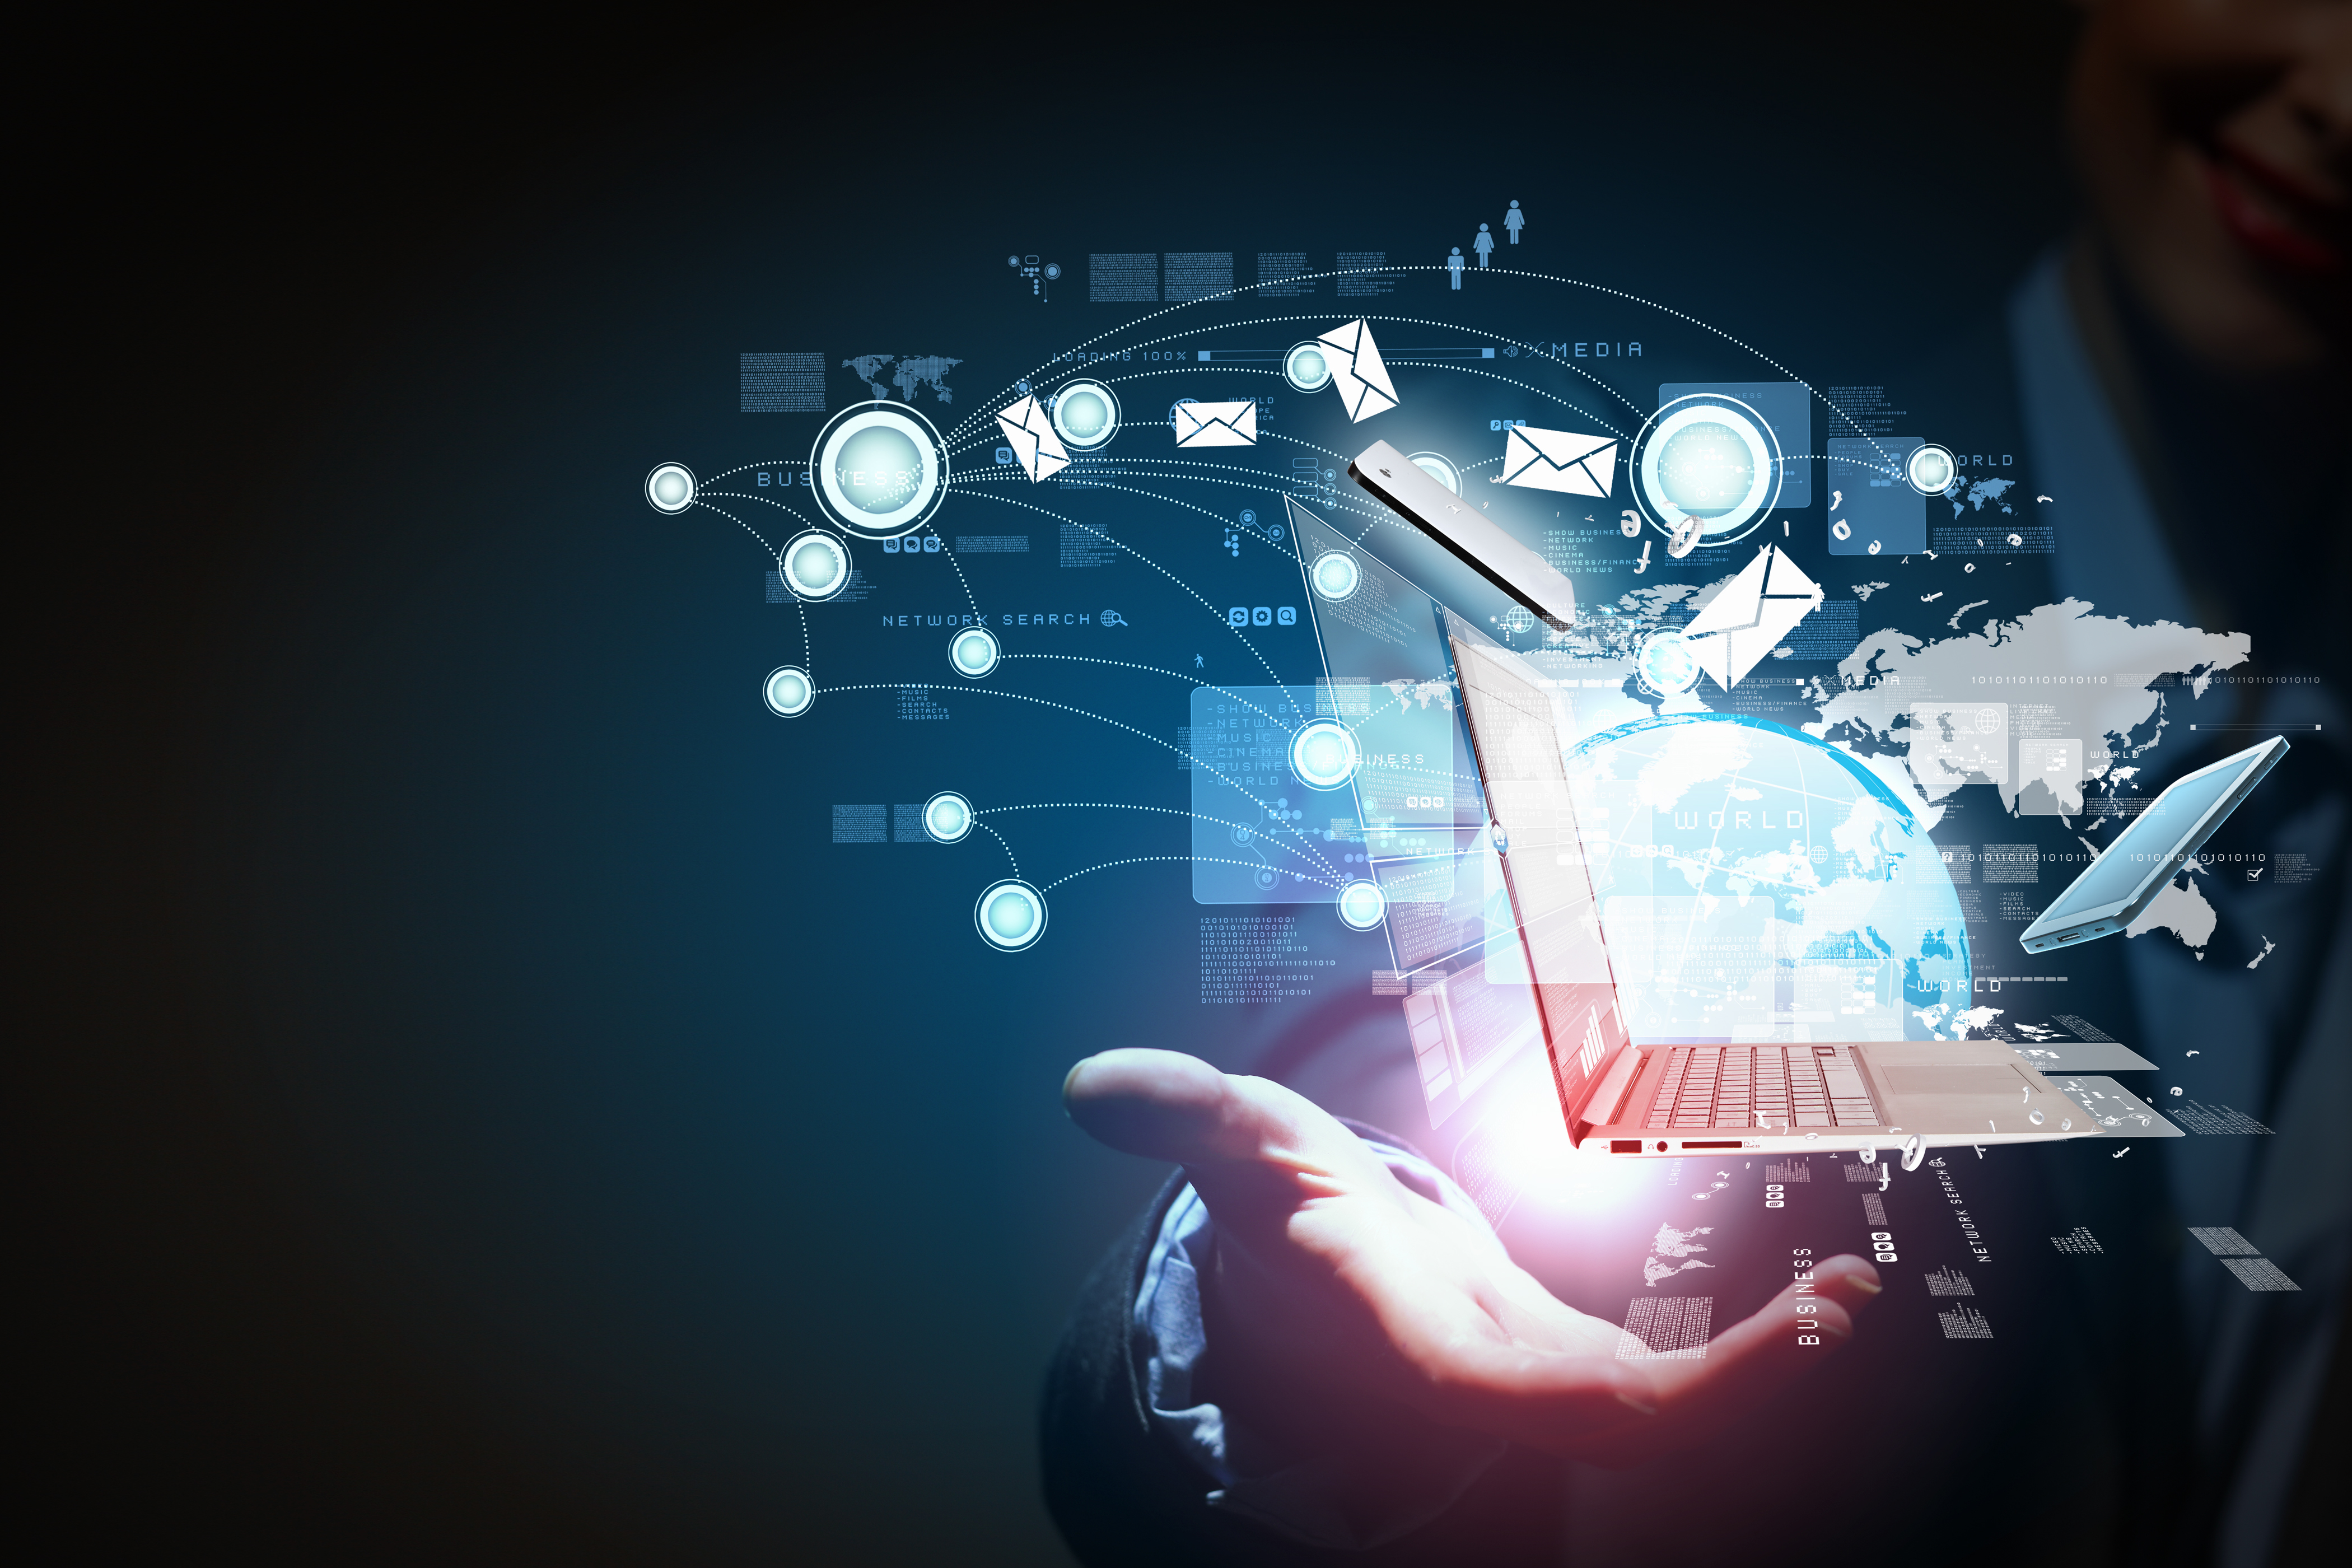 a look into internet banking and communications the three most important aspects of the modern compu